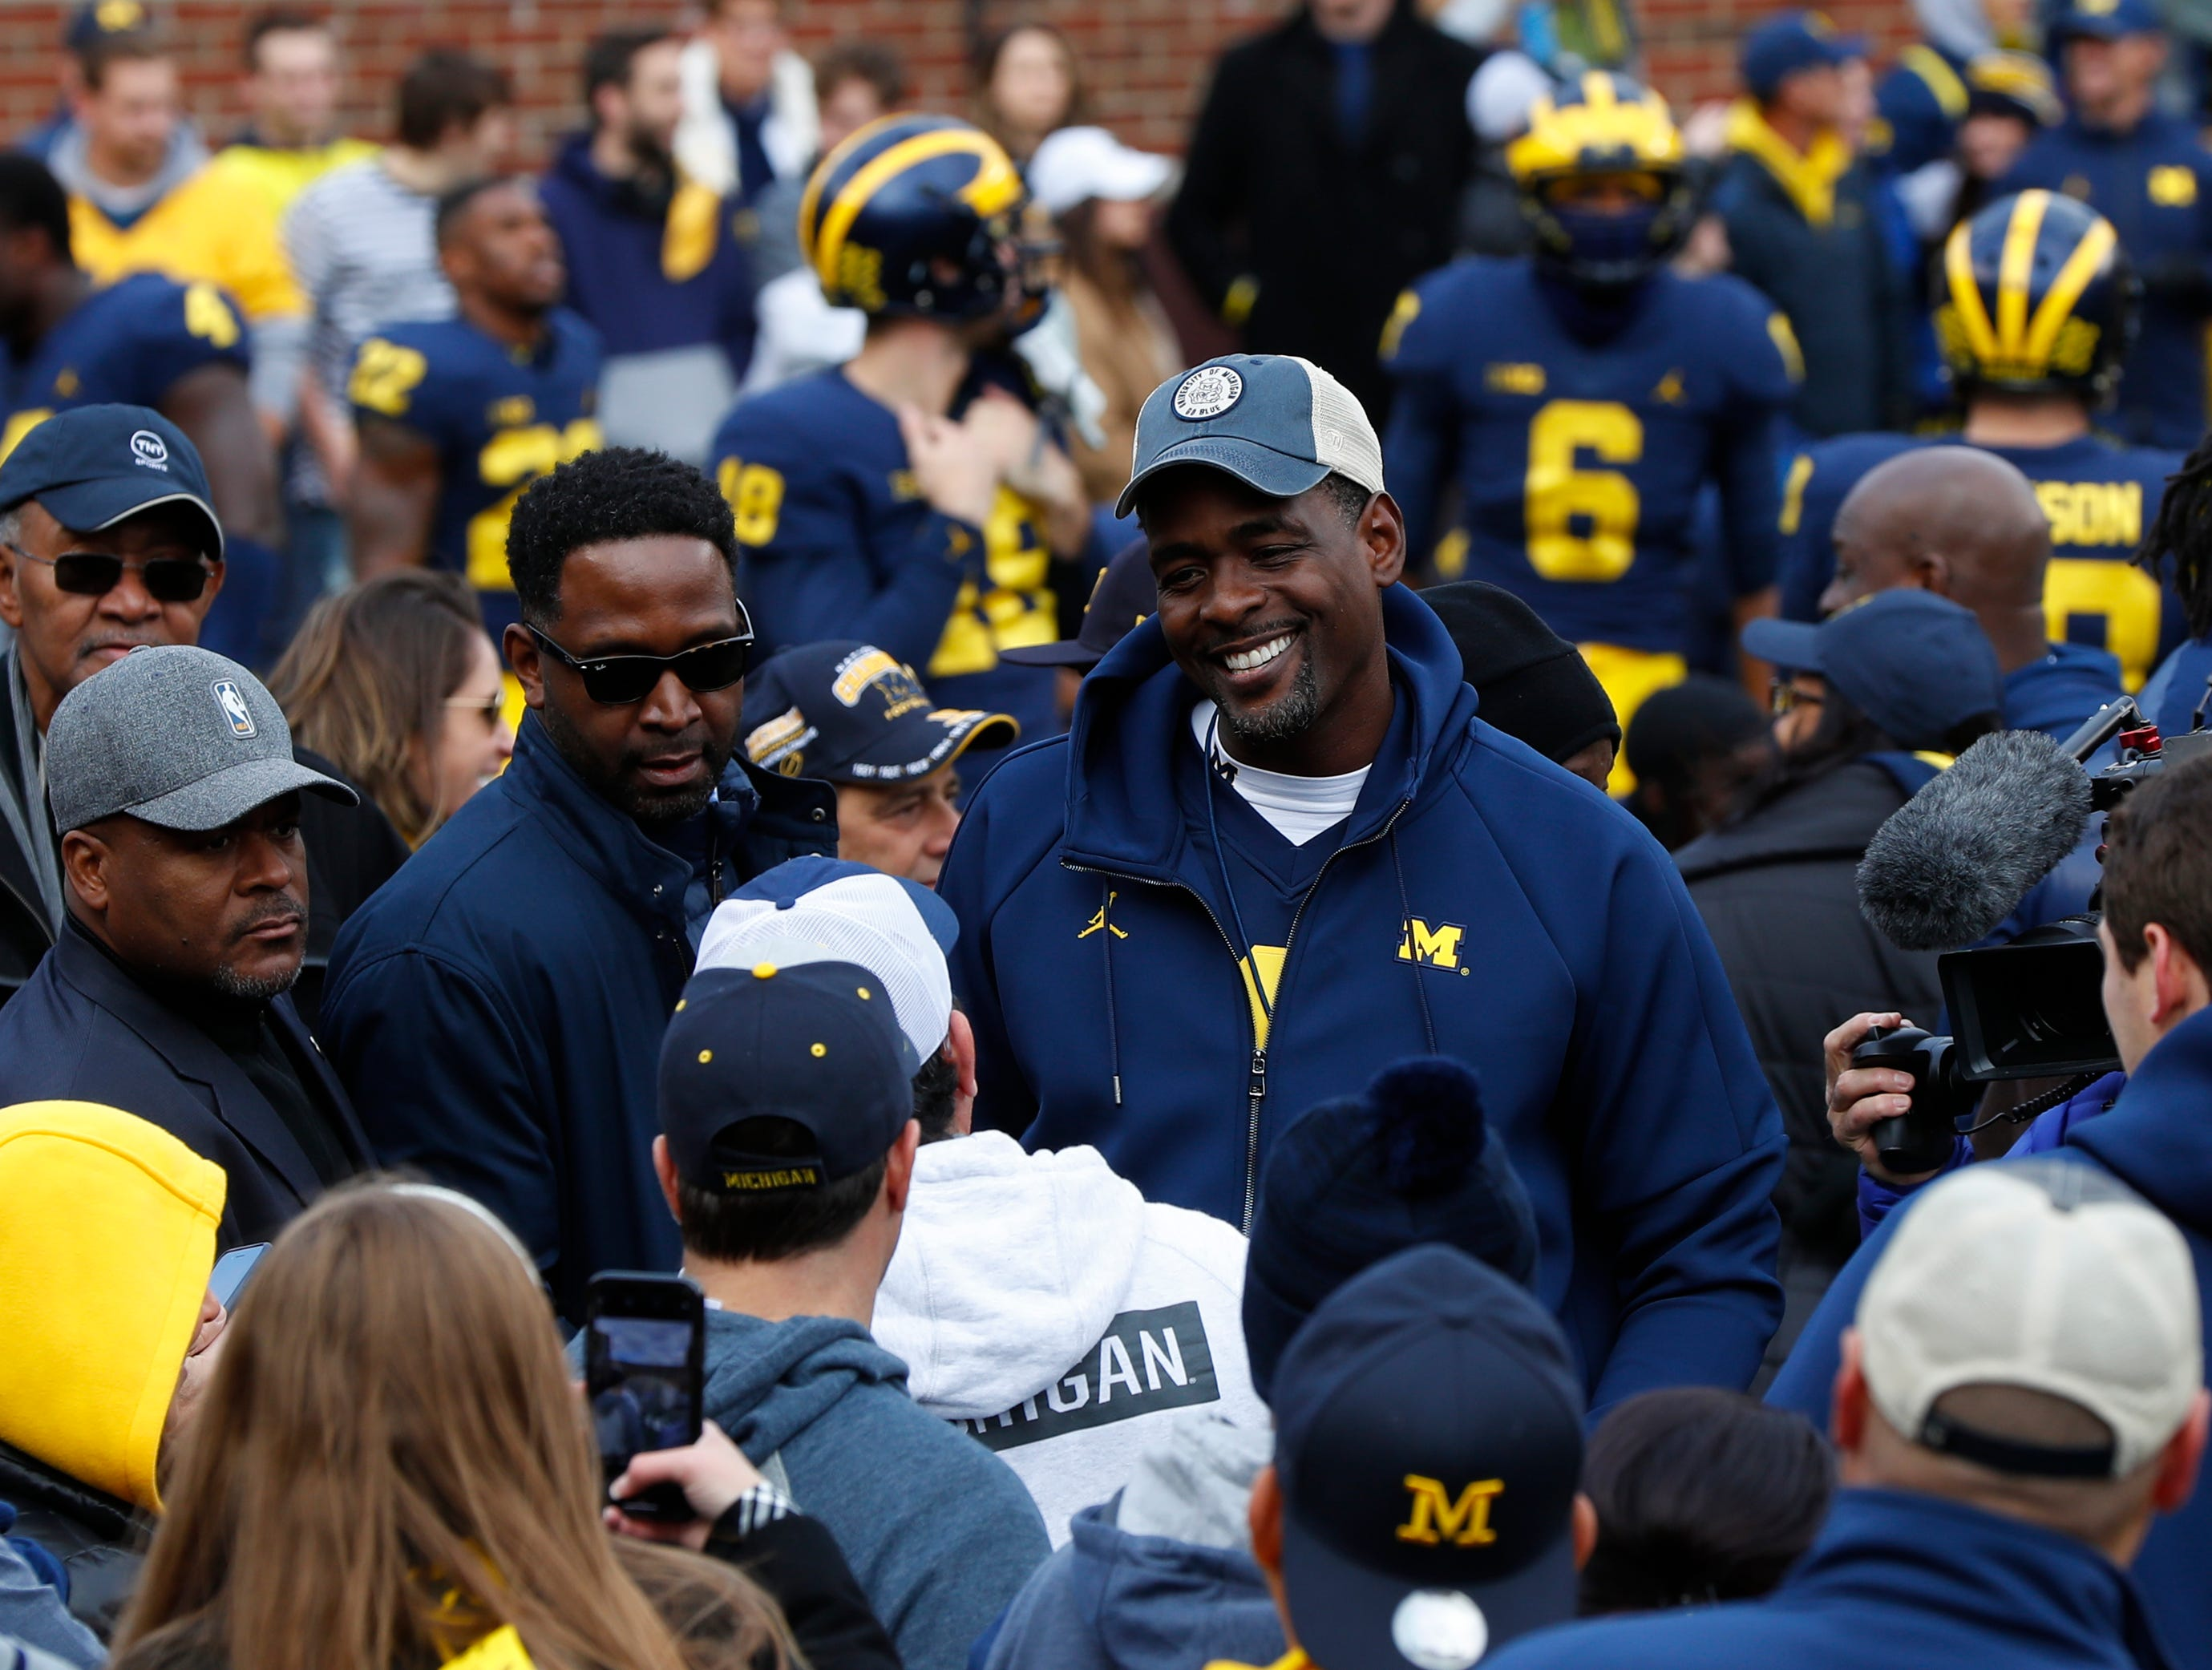 Chris Webber, a former basketball player, talks on the sidelines before an NCAA college football game against the Penn State in Ann Arbor, Mich., Saturday, Nov. 3, 2018. (AP Photo/Paul Sancya)